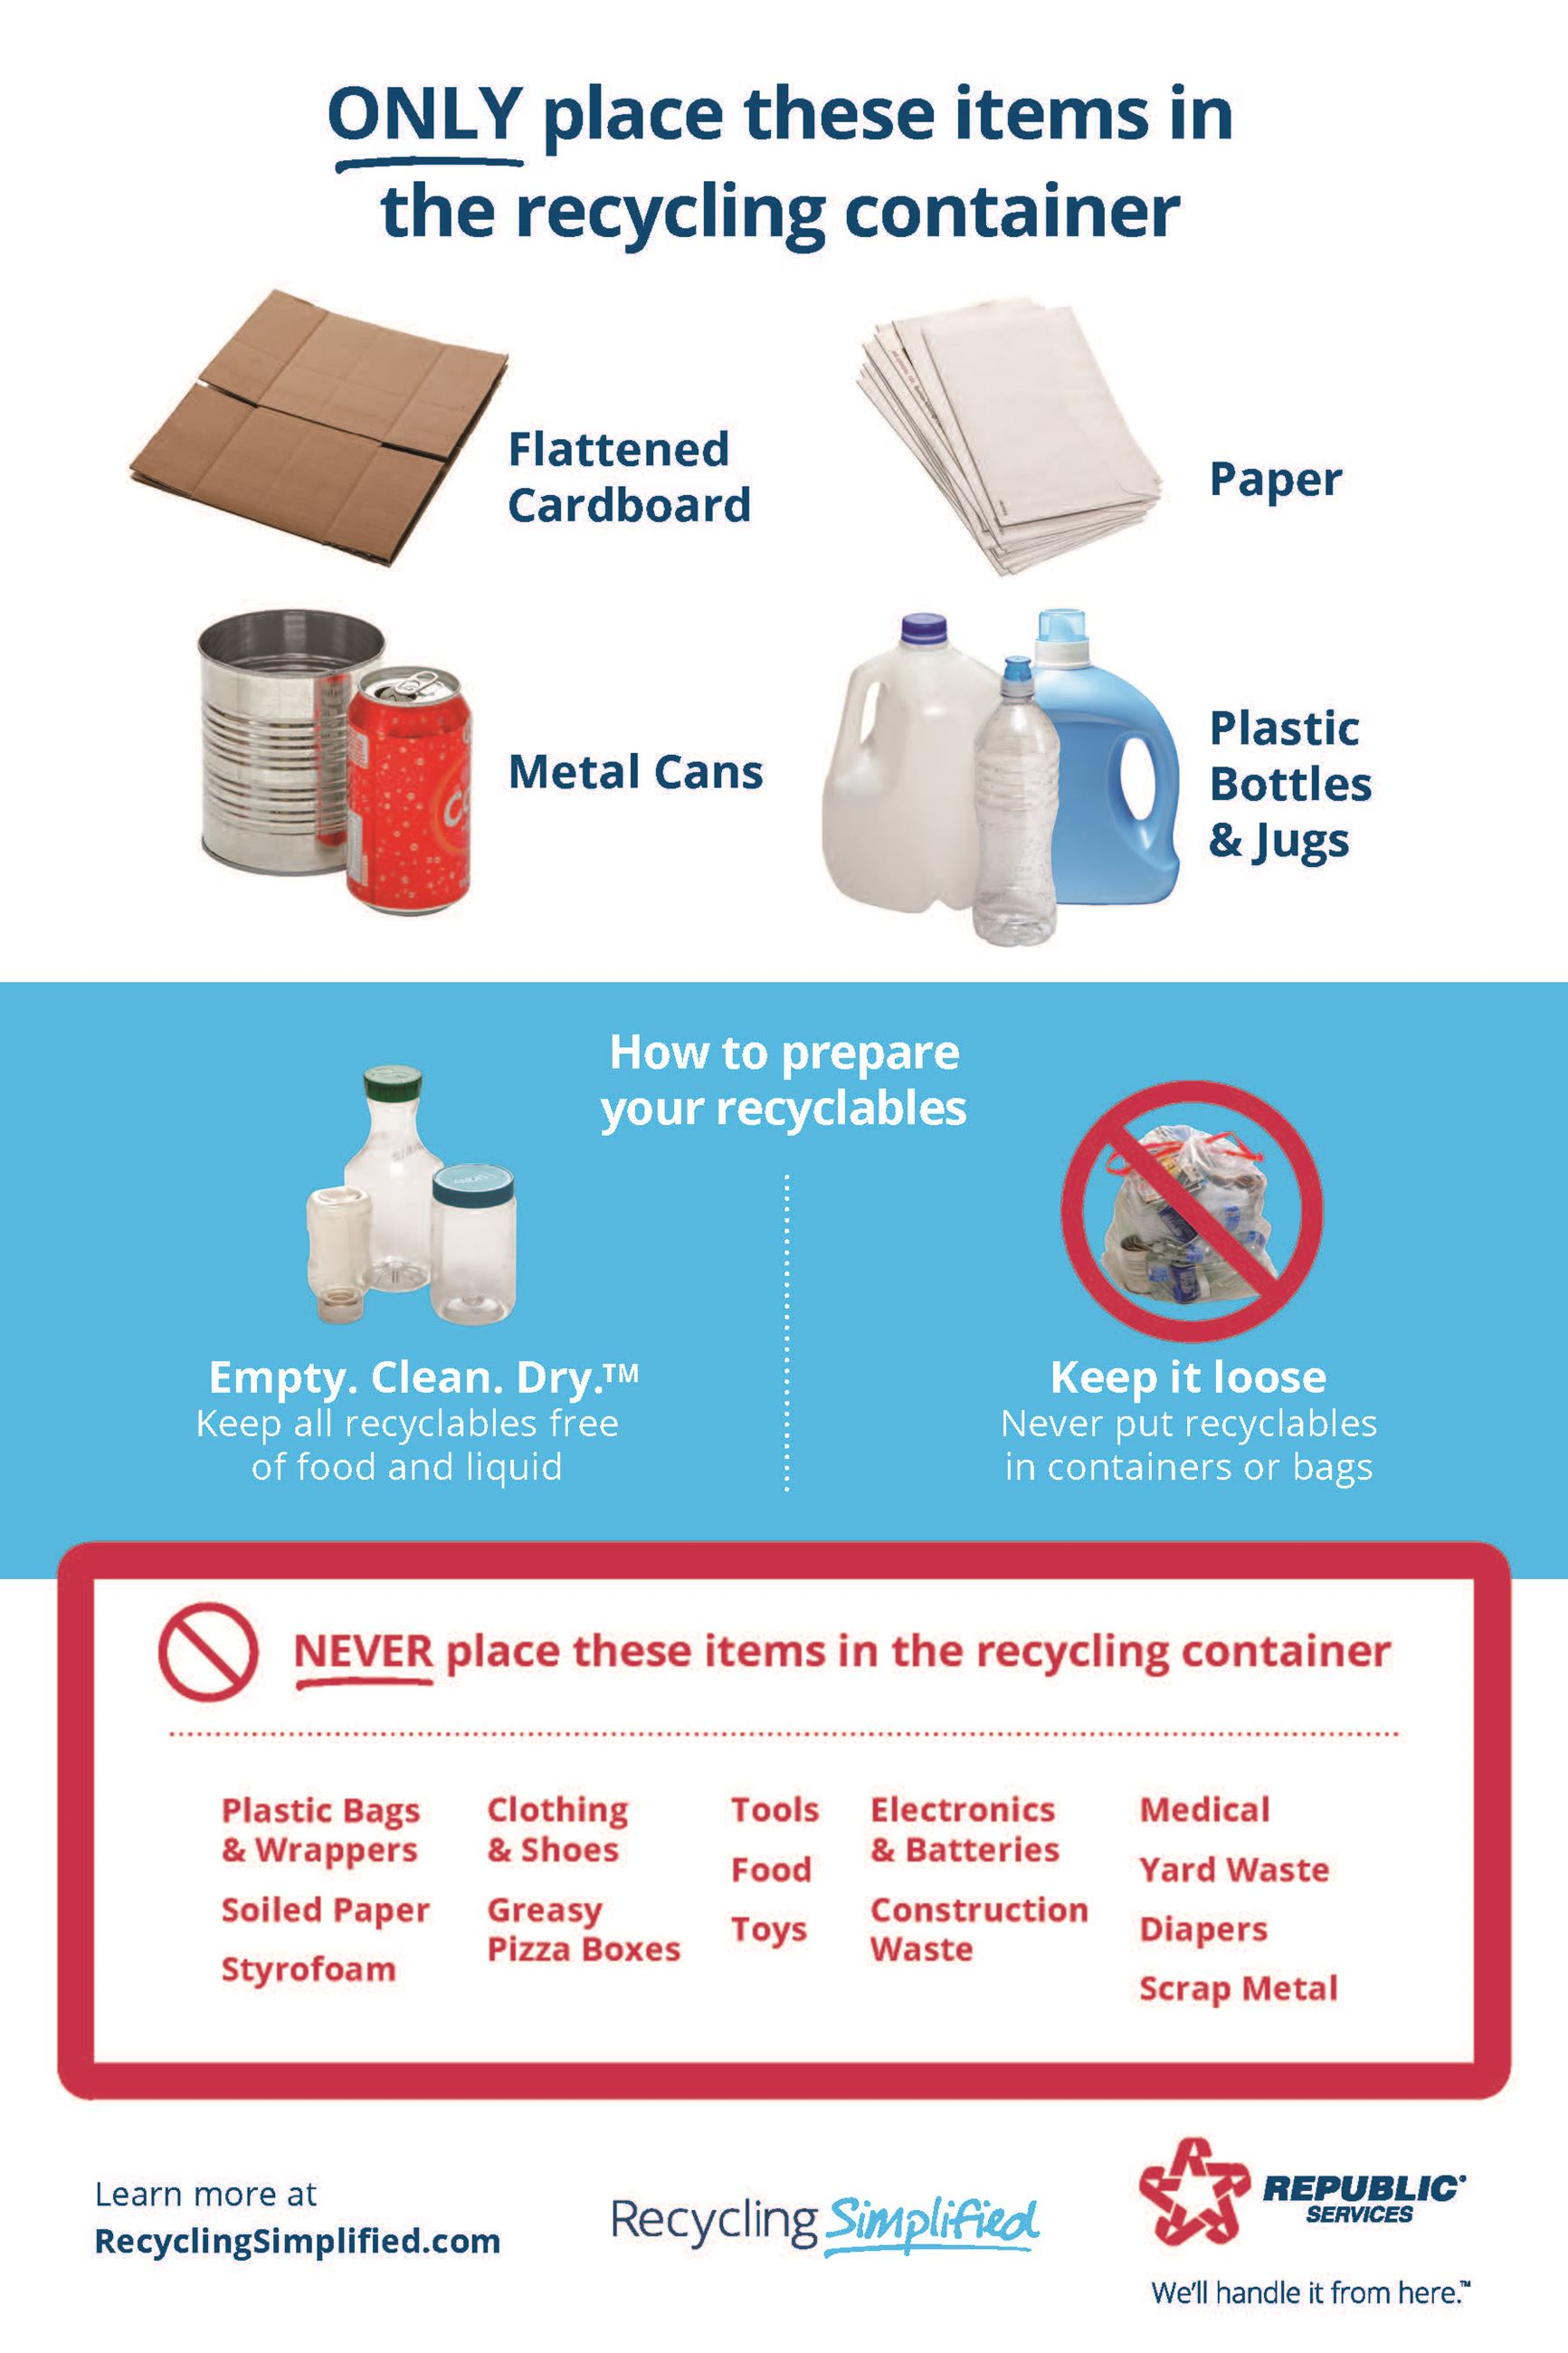 eng-recycling-simplified-quick-reference-guide